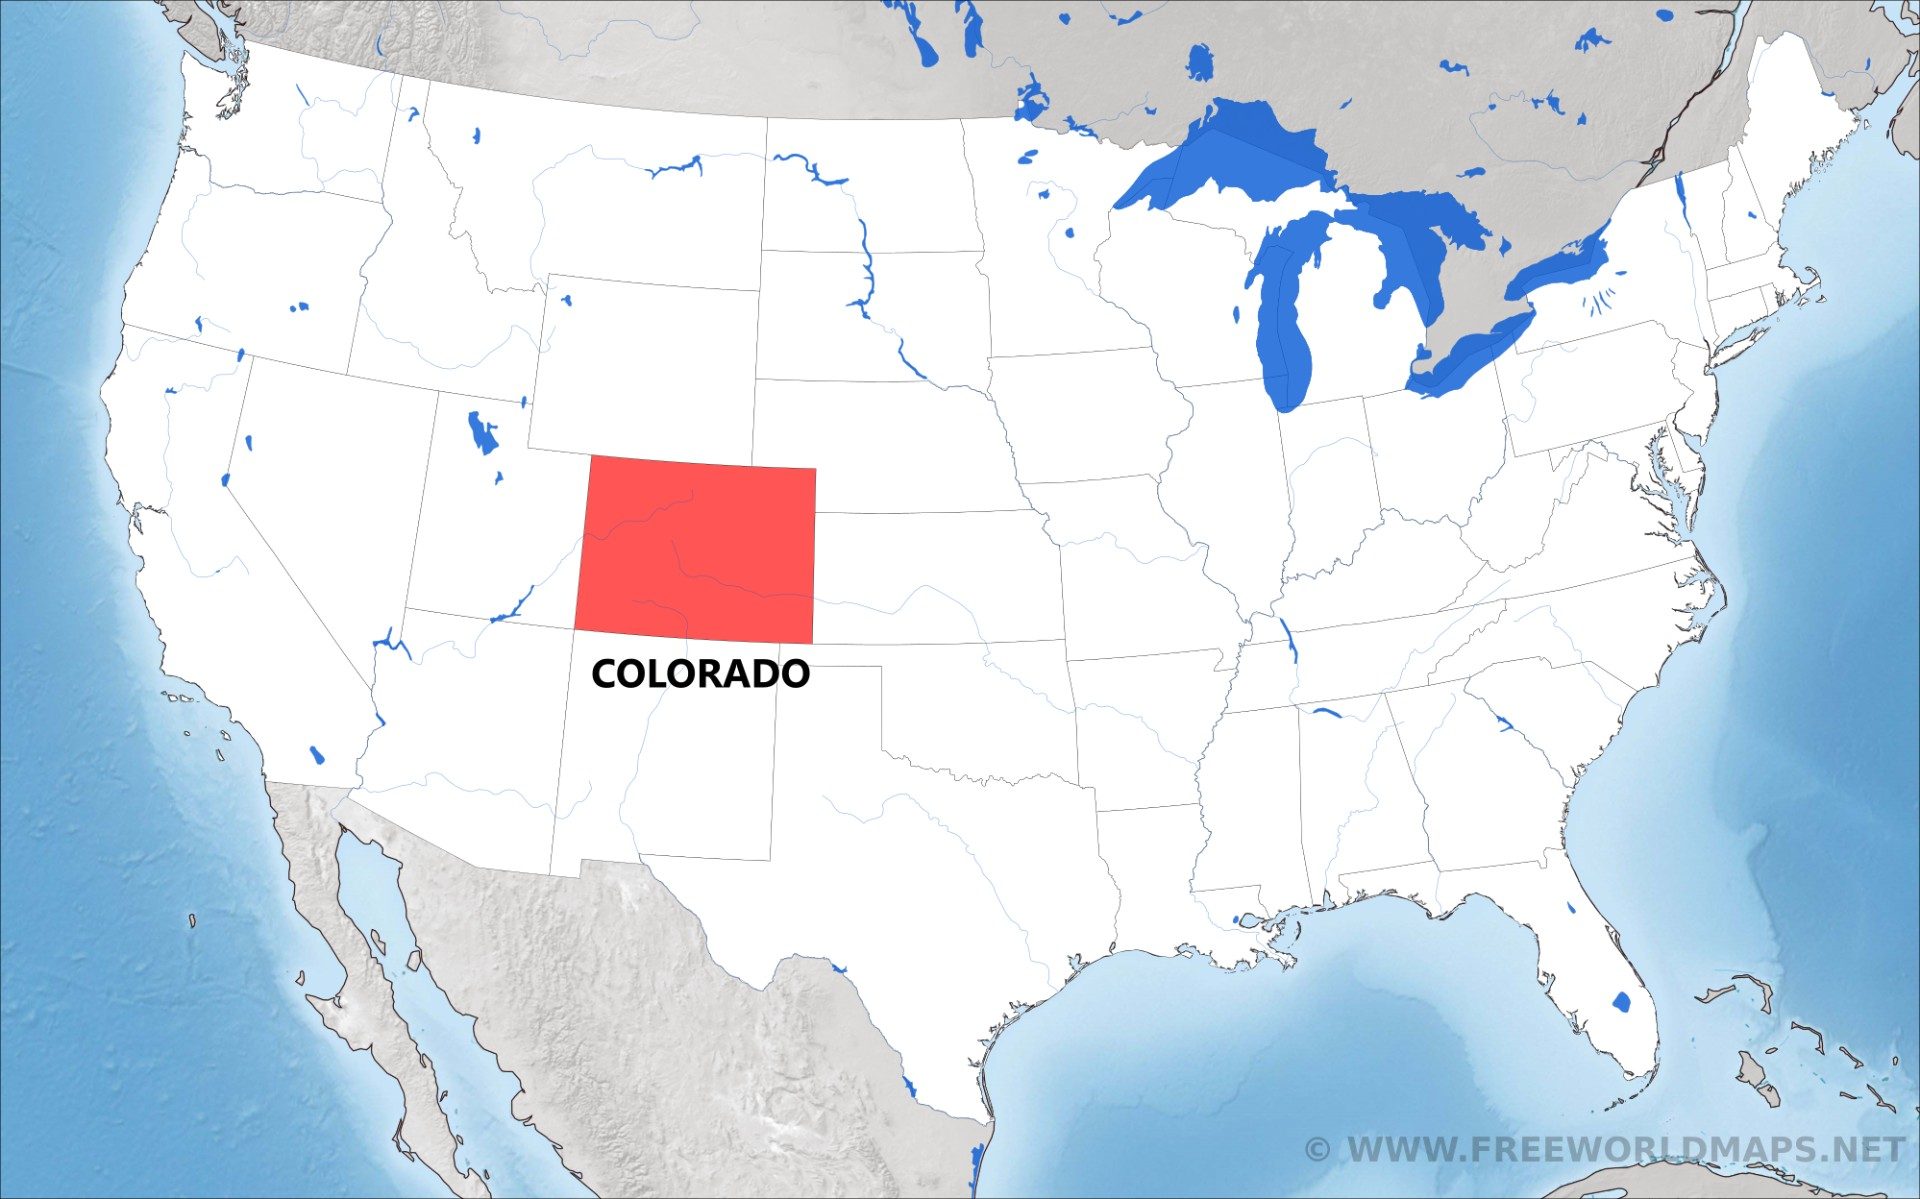 Where is Colorado located on the map